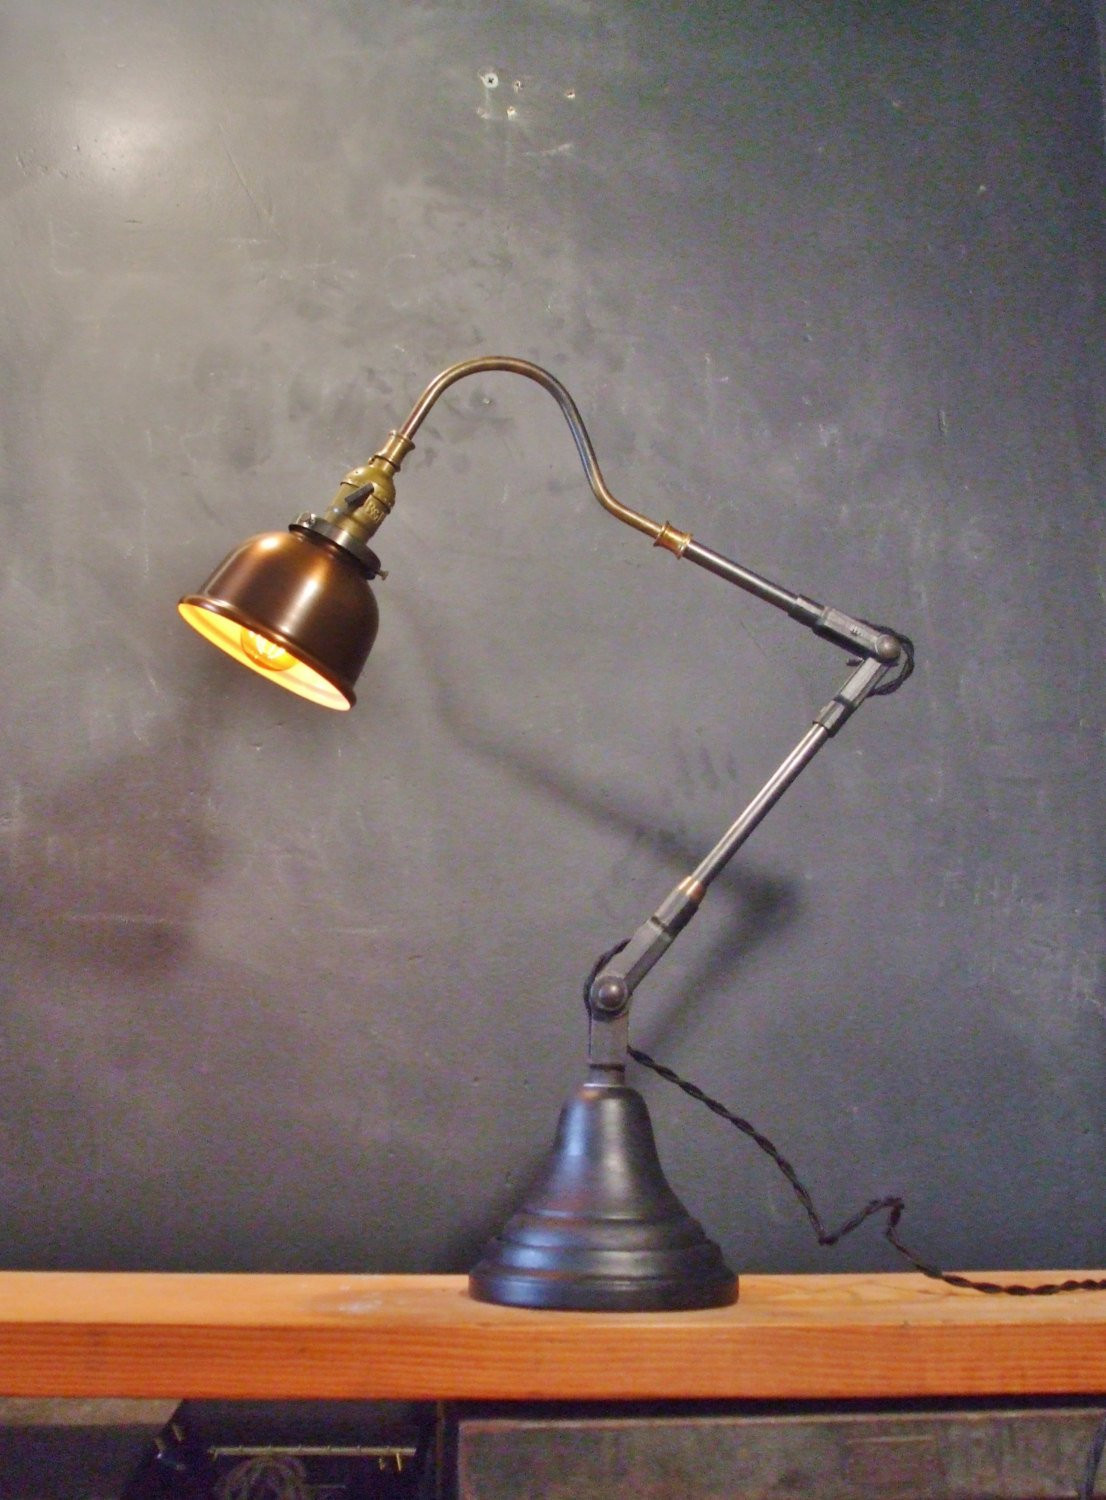 Best ideas about Copper Desk Lamp . Save or Pin Vintage Industrial Desk Lamp w Copper Shade Pharmacy Lamp Now.